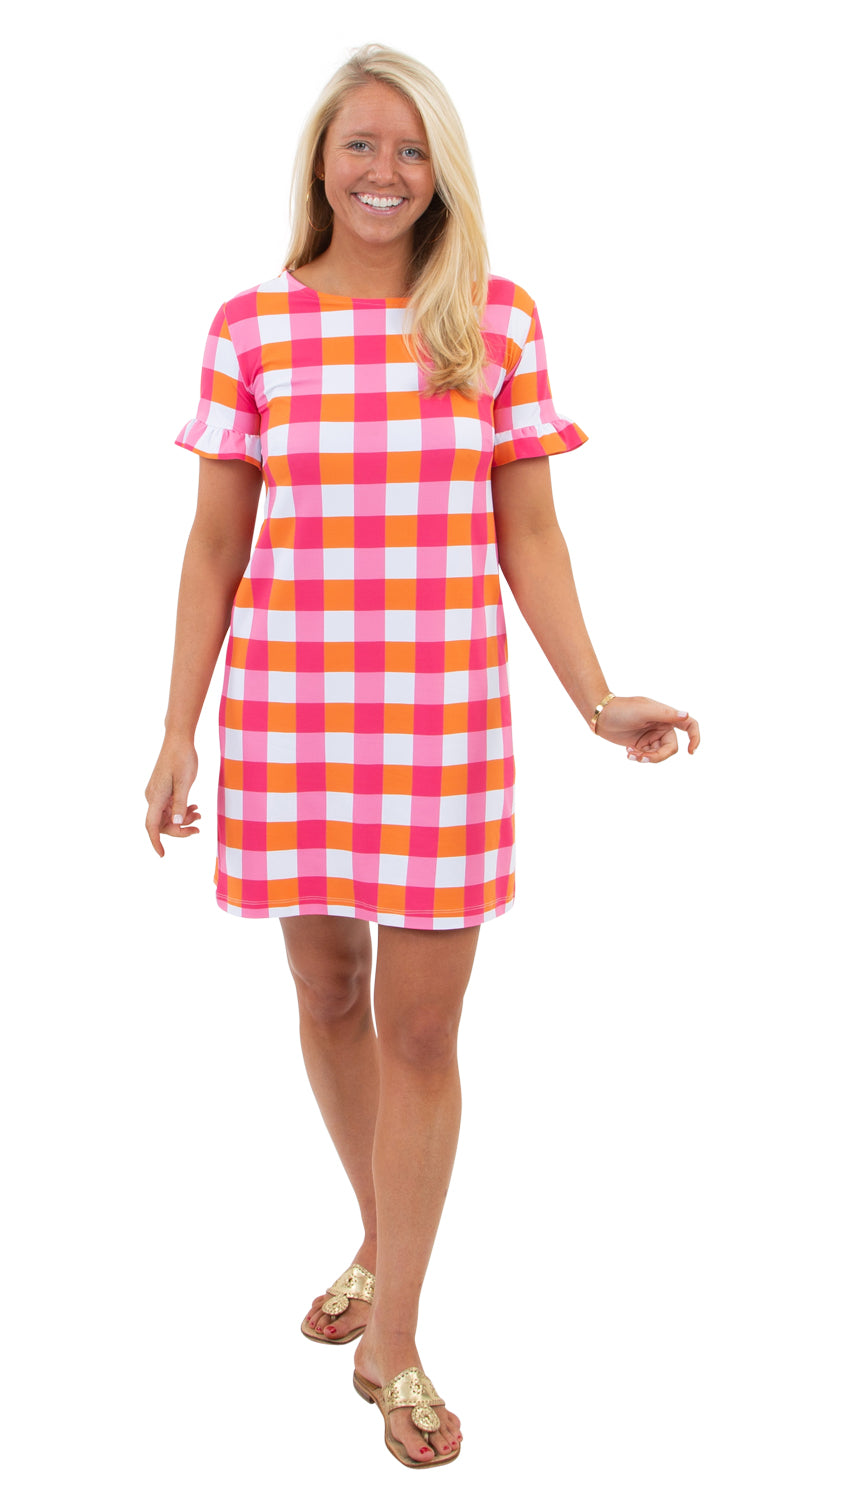 Coco Dress - Pink/Orange Chatham Check